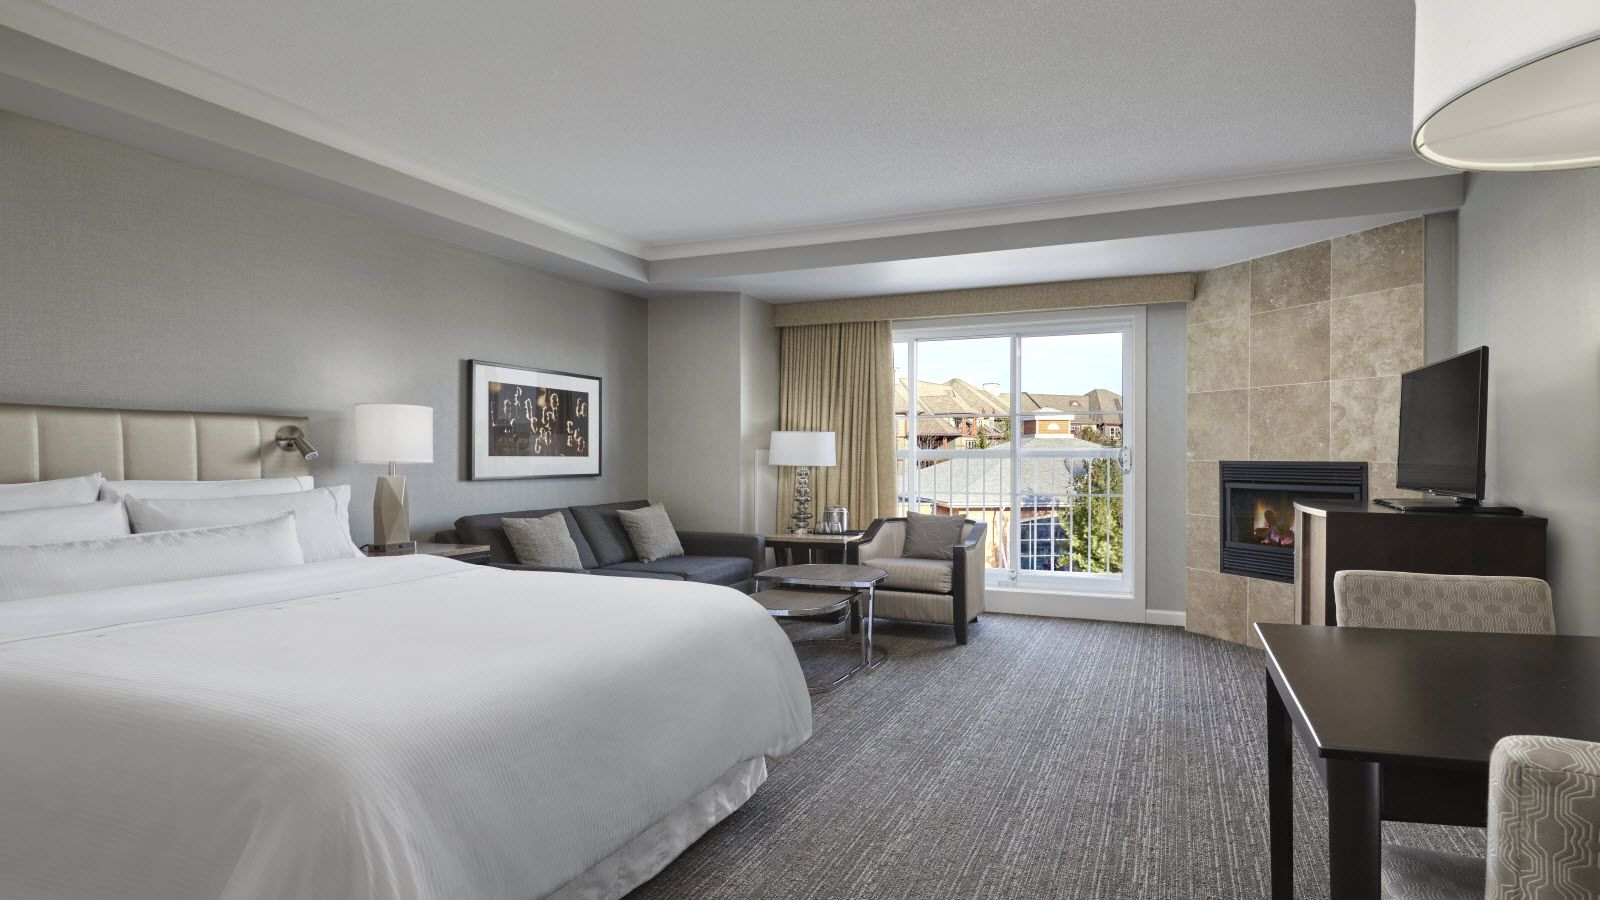 Deluxe Guest Room | The Westin Trillium House, Blue Mountain